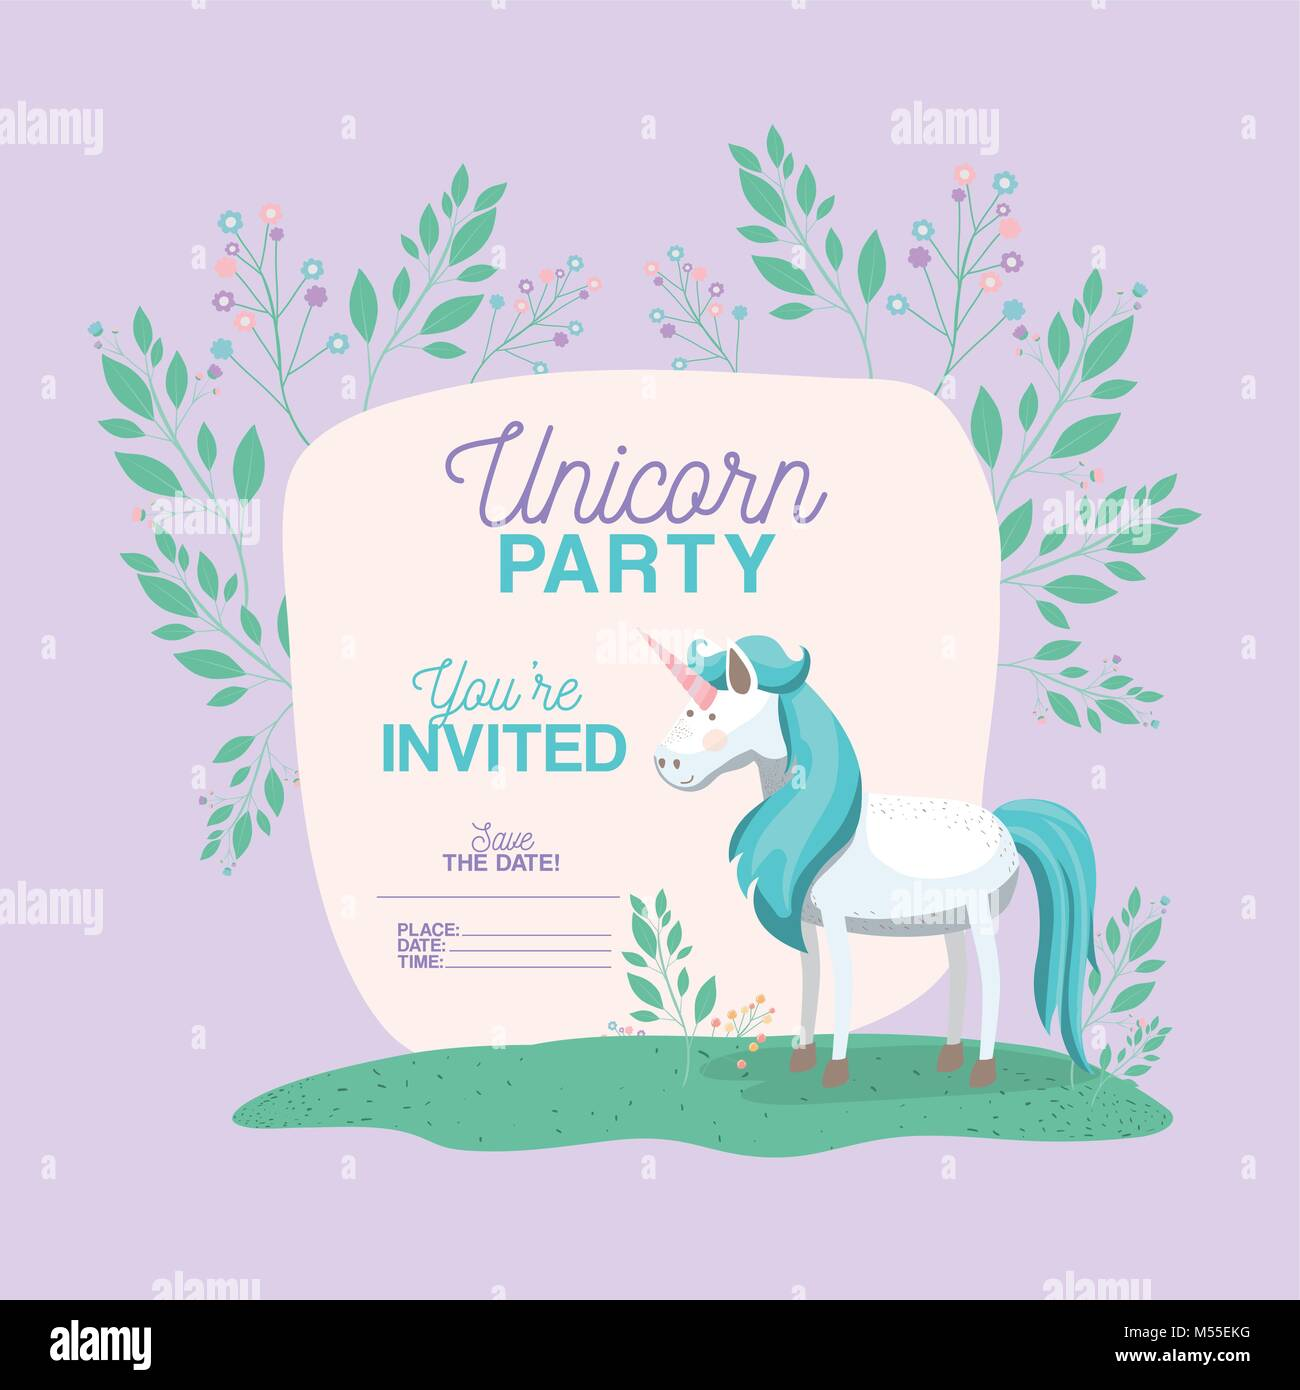 Unicorn party invitation card with floral decoration stock vector unicorn party invitation card with floral decoration stopboris Choice Image